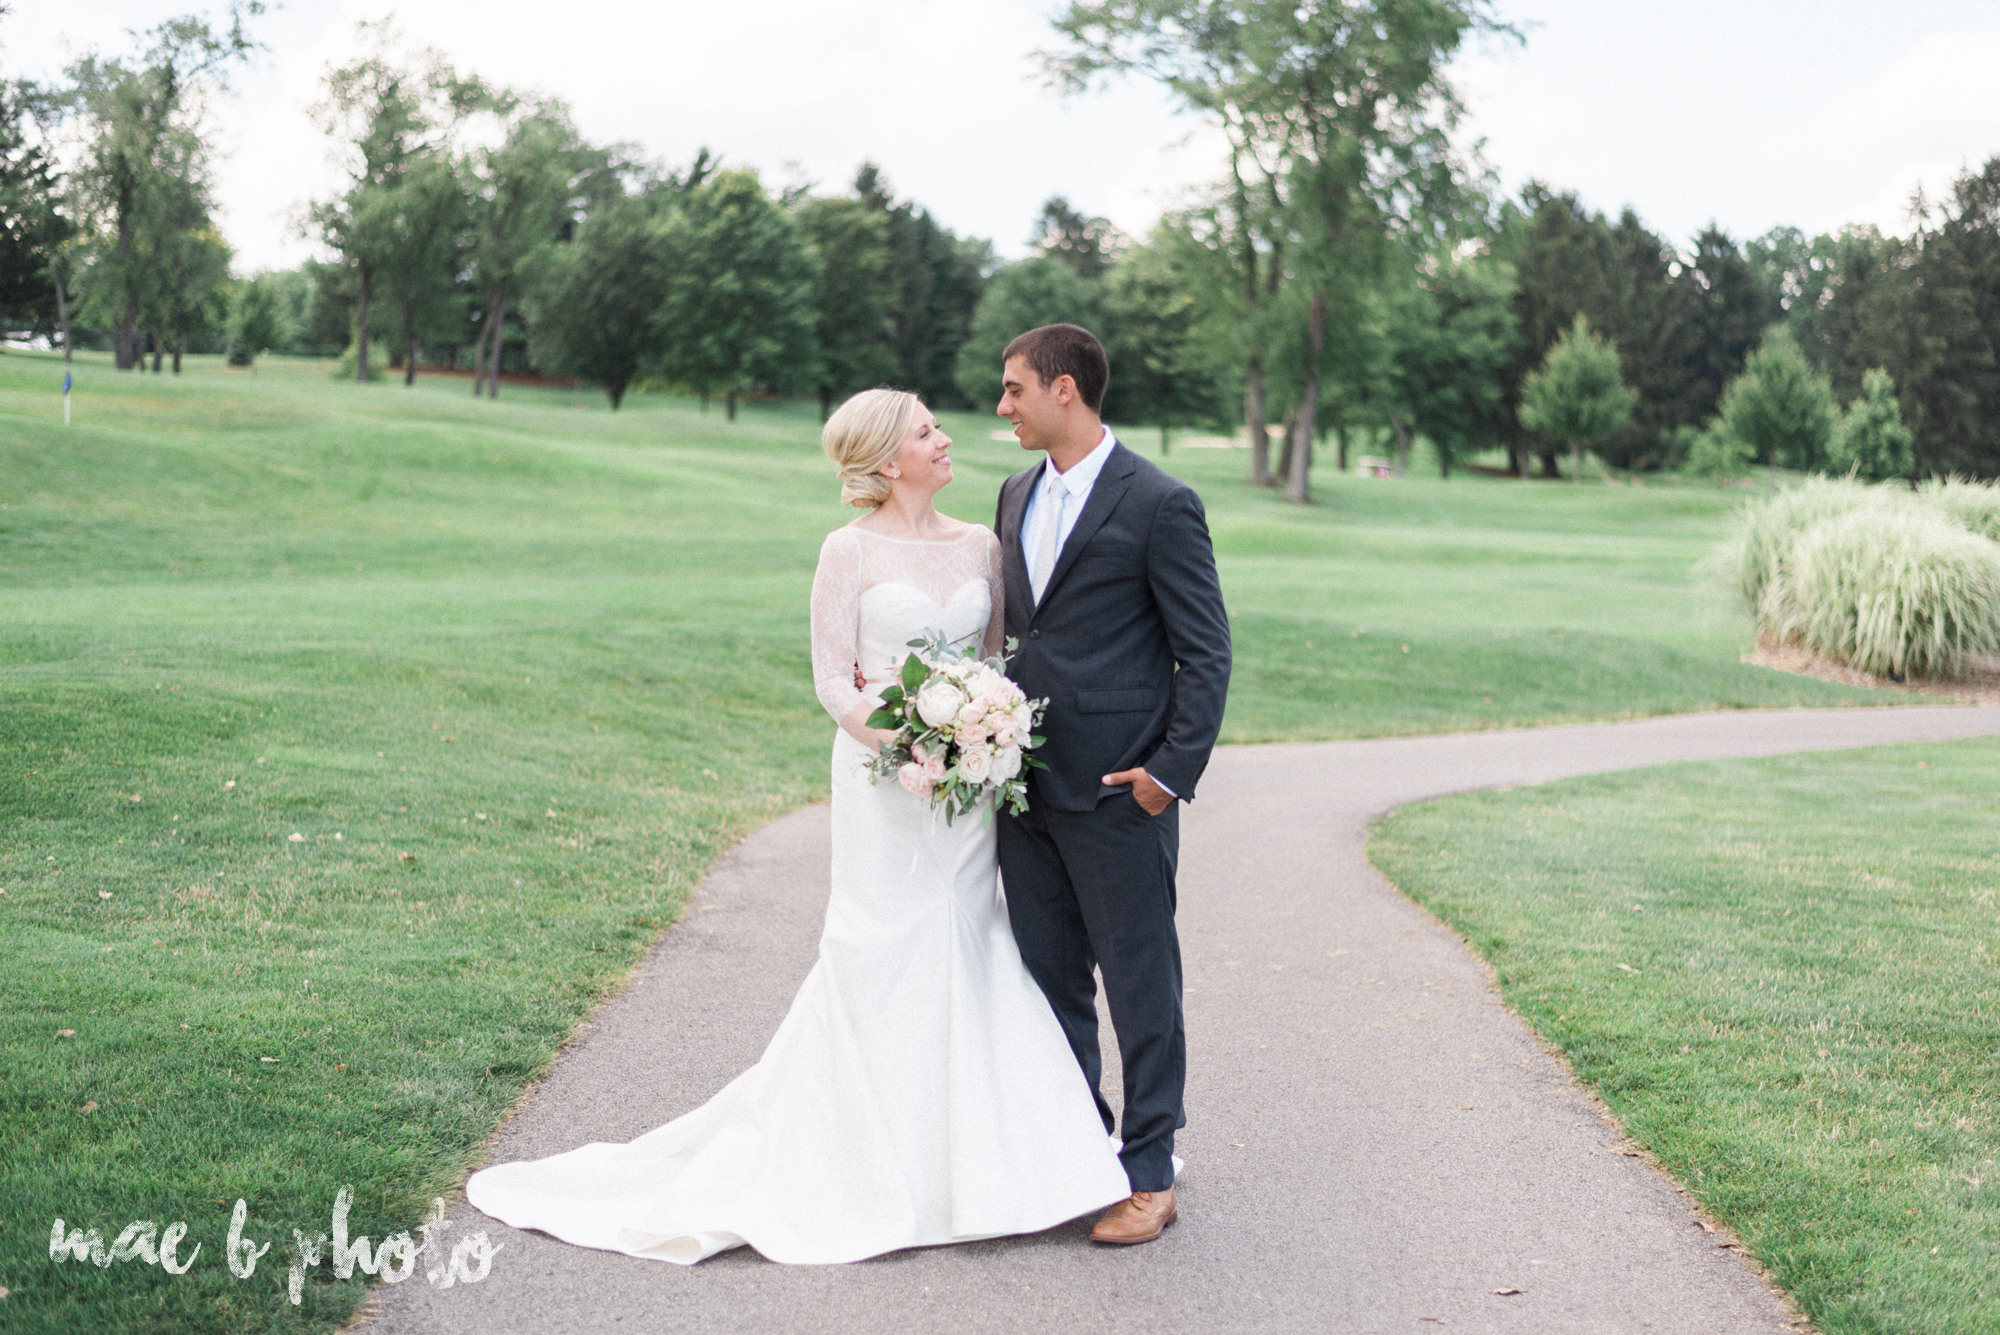 emily and michael's industrial chic summer country club wedding at the lake club in poland ohio photographed by cleveland wedding photographer mae b photo-59.jpg